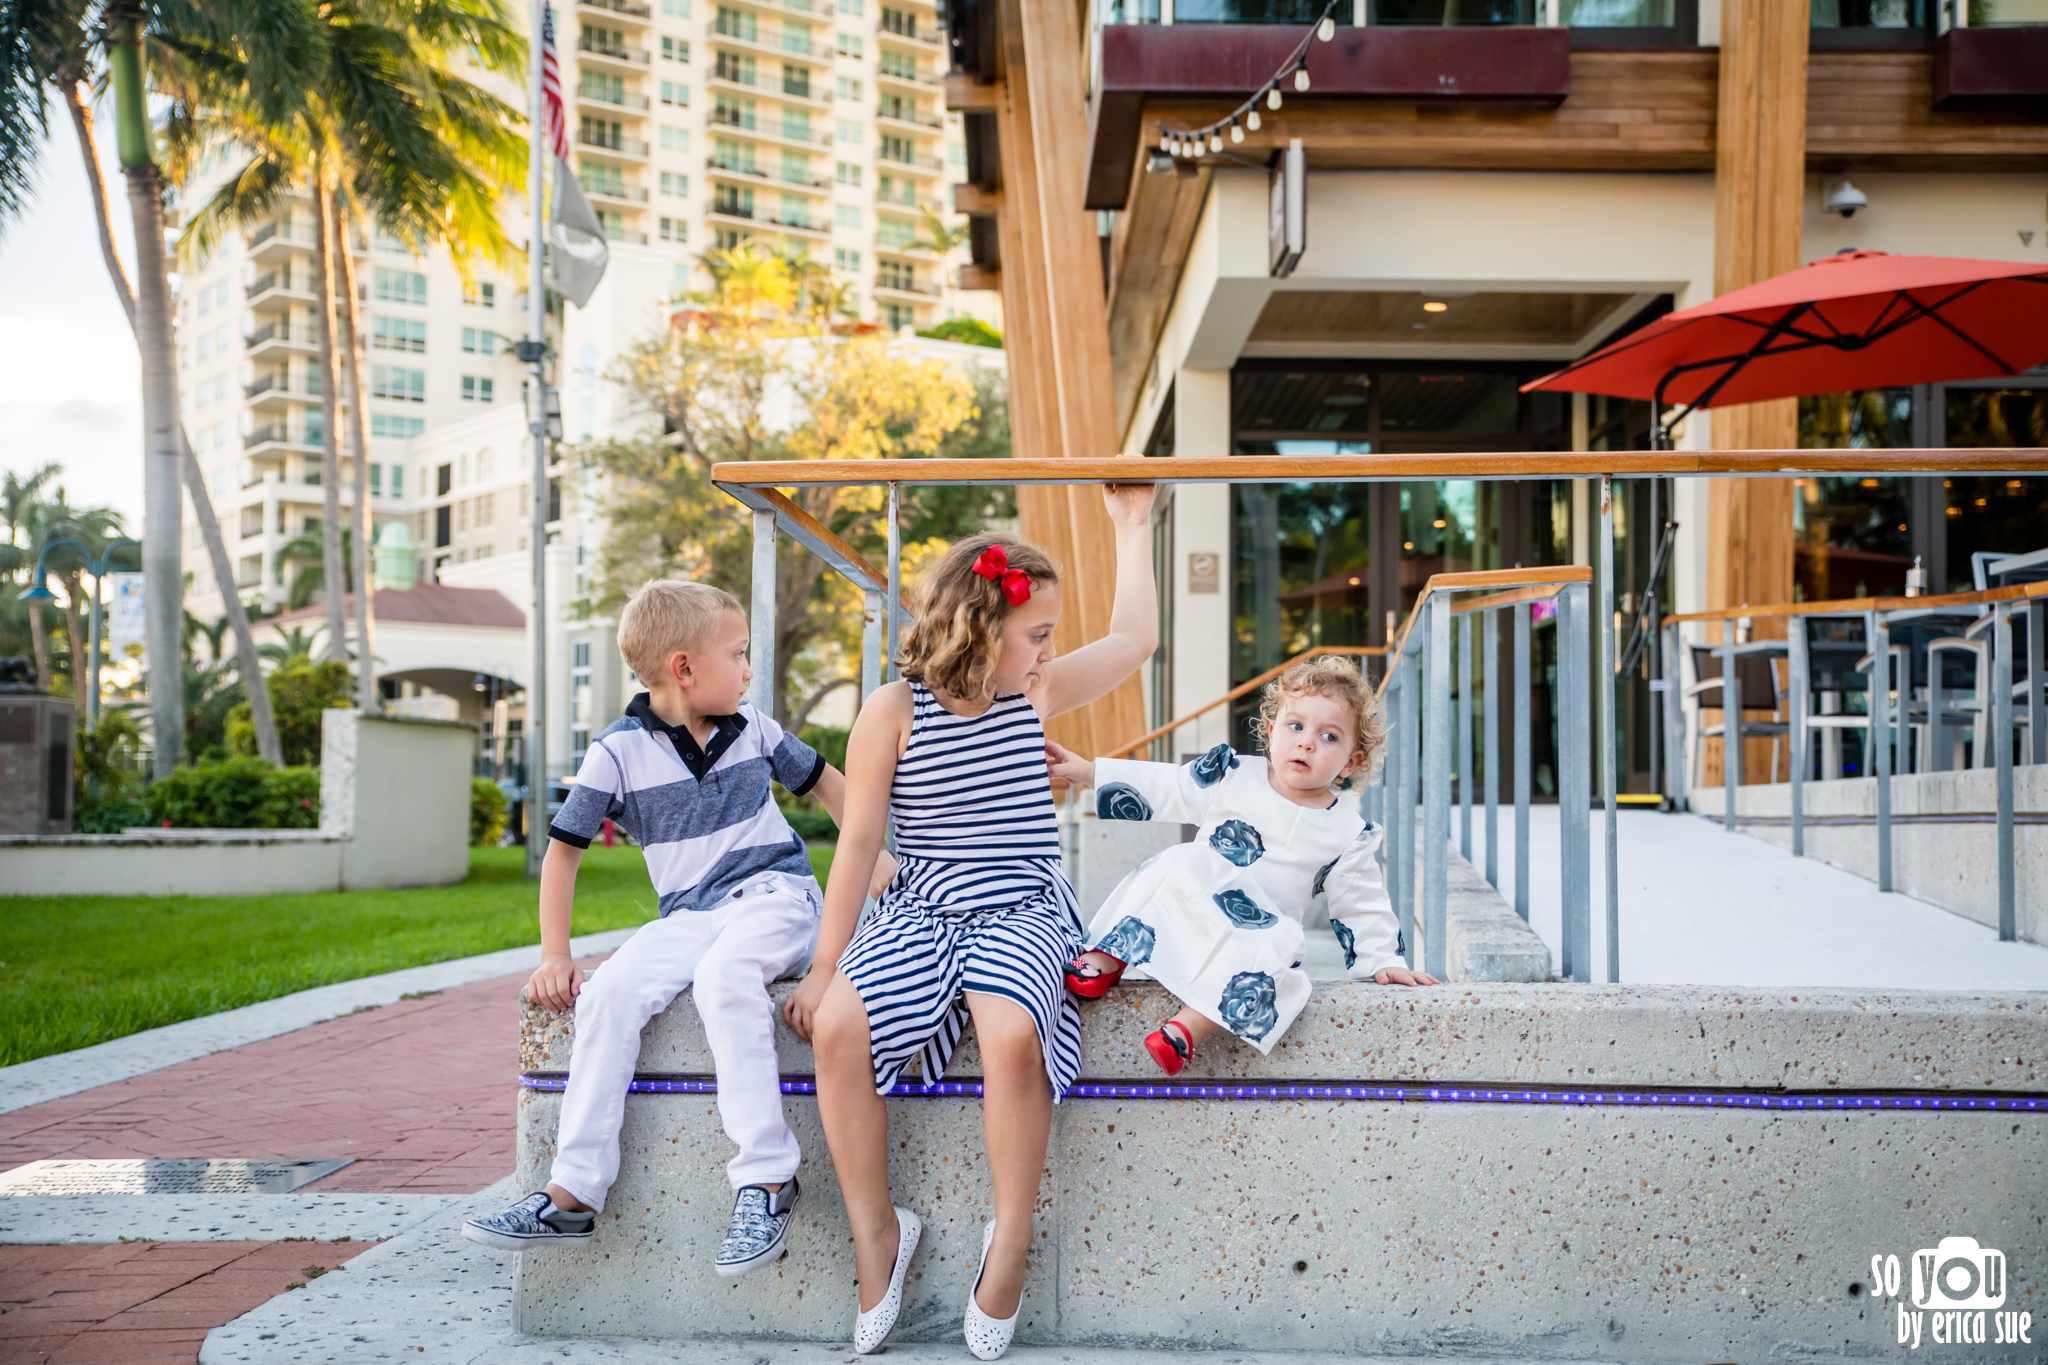 ft-lauderdale-lifestyle-family-photography-so-you-by-erica-sue-0329.jpg